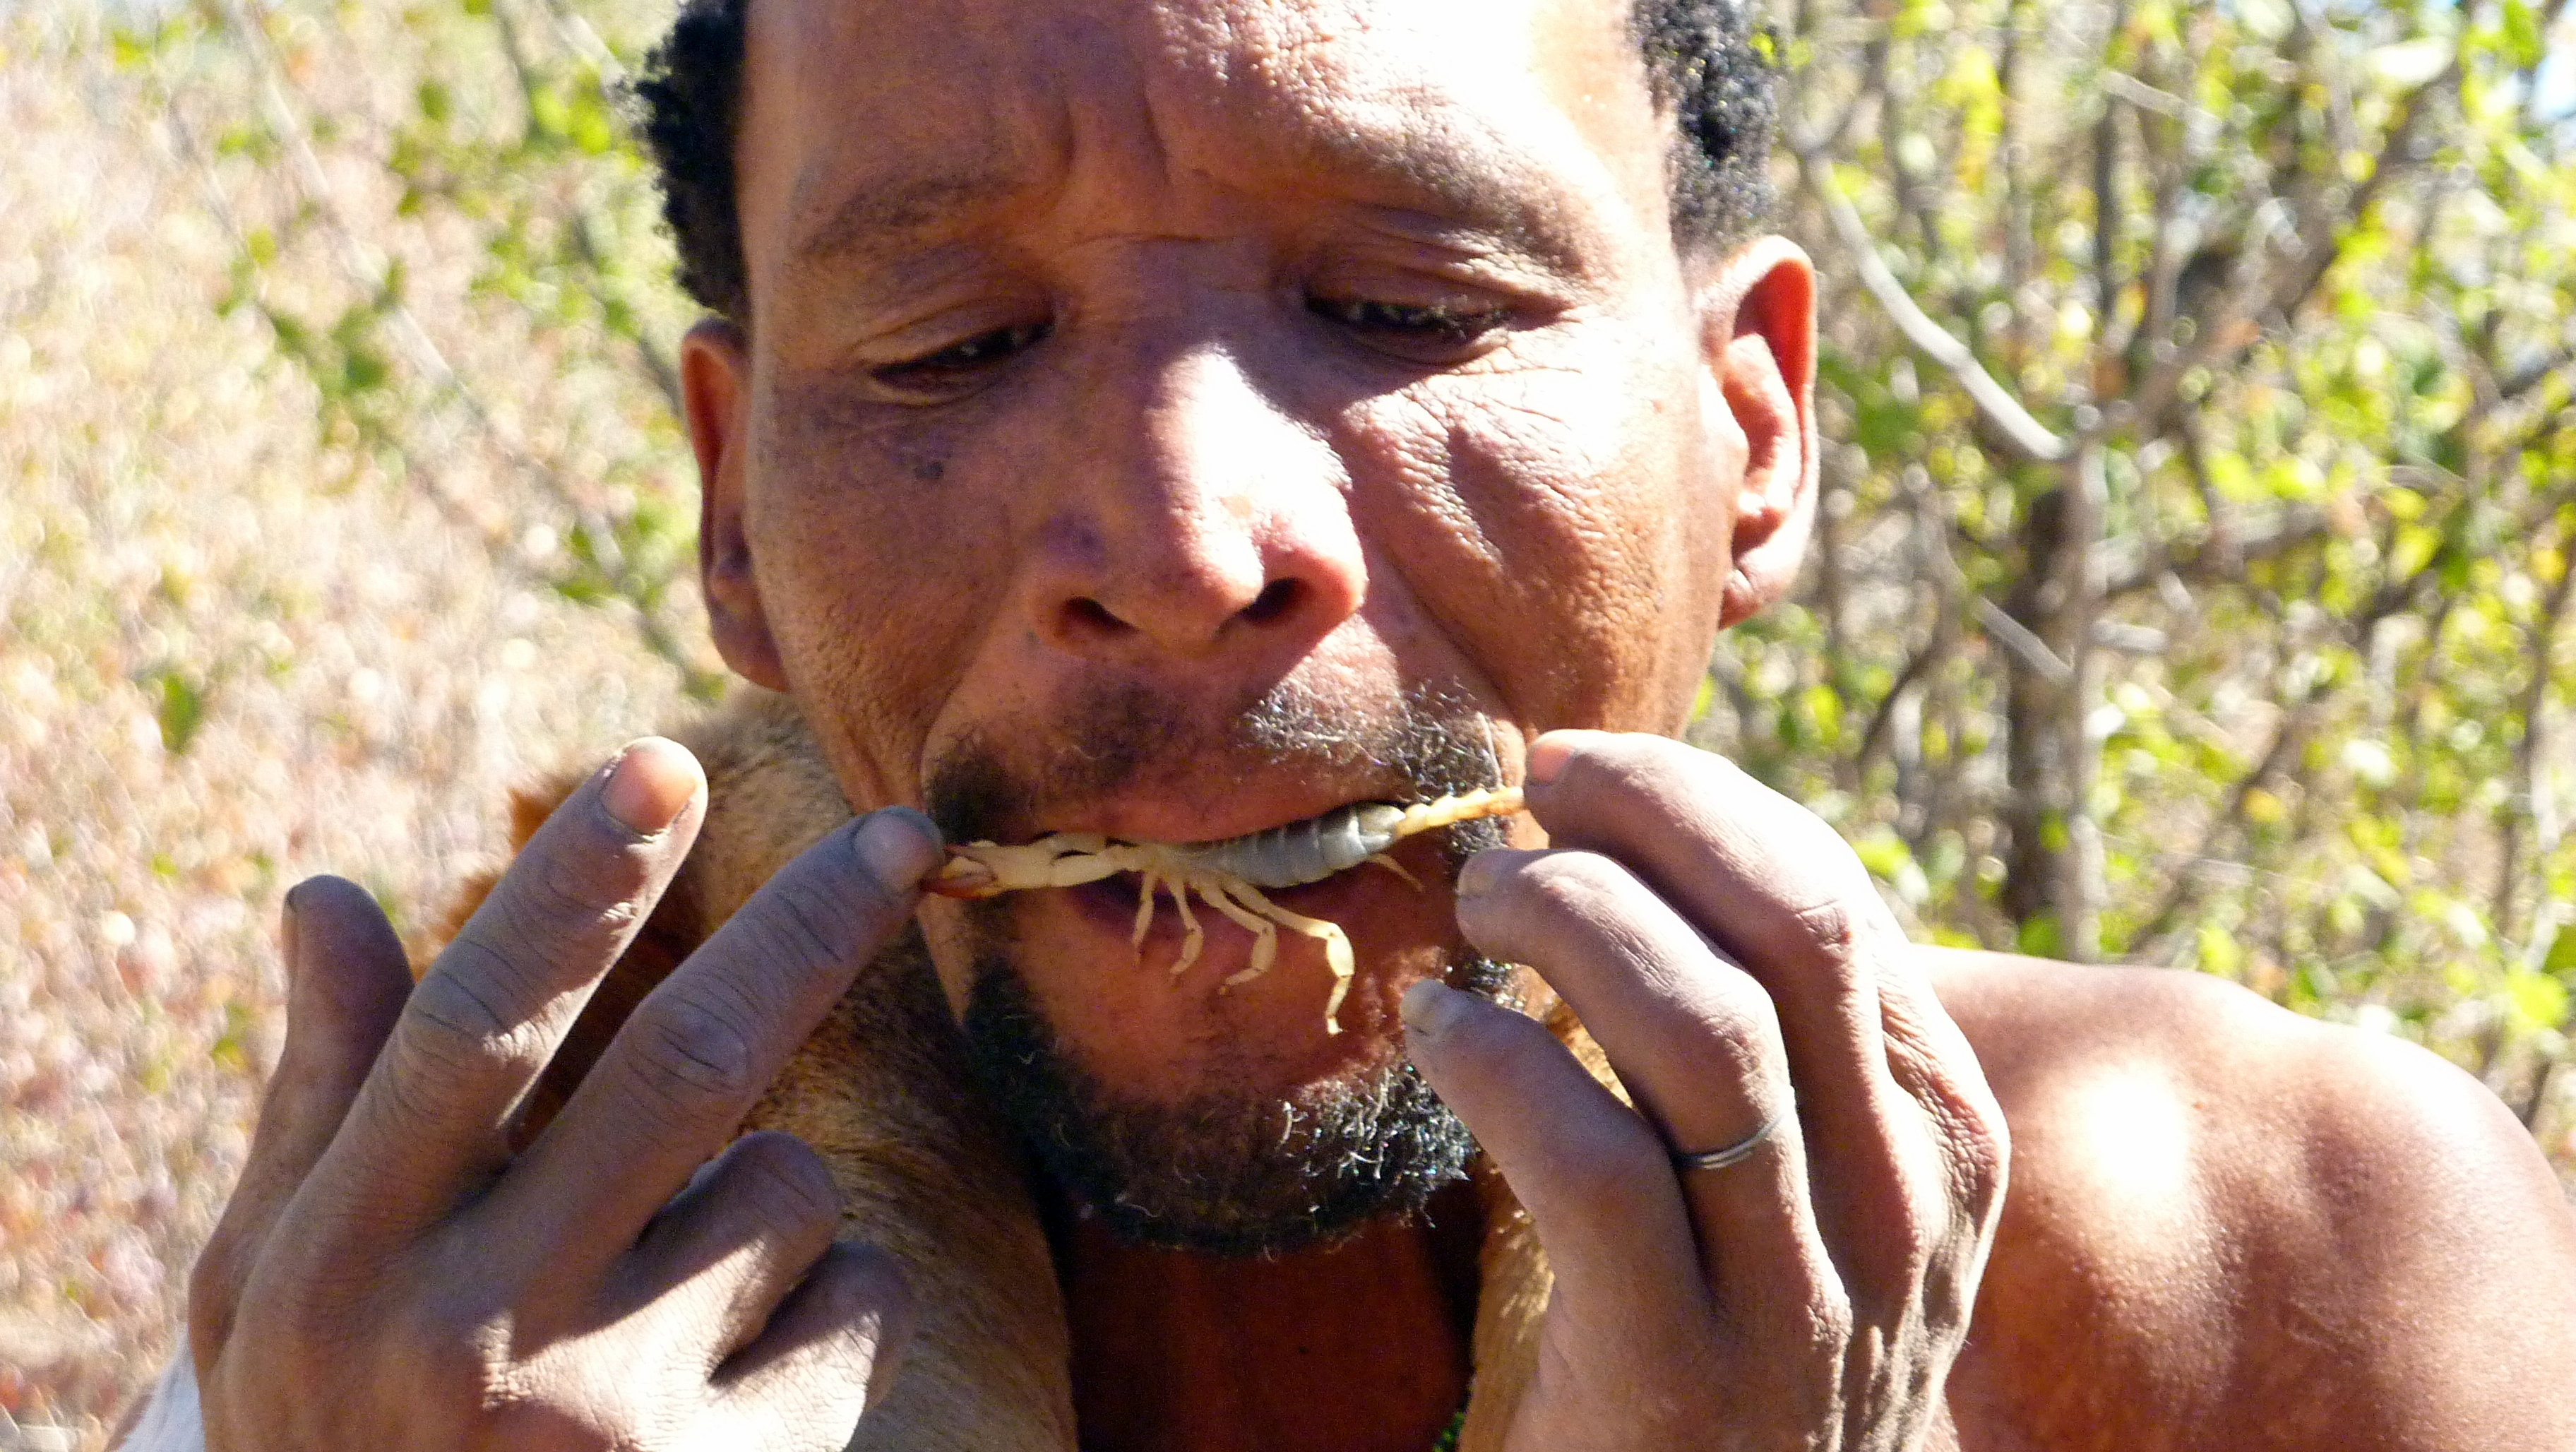 Digging up scorpions with the bushmen at Meno a Kwena